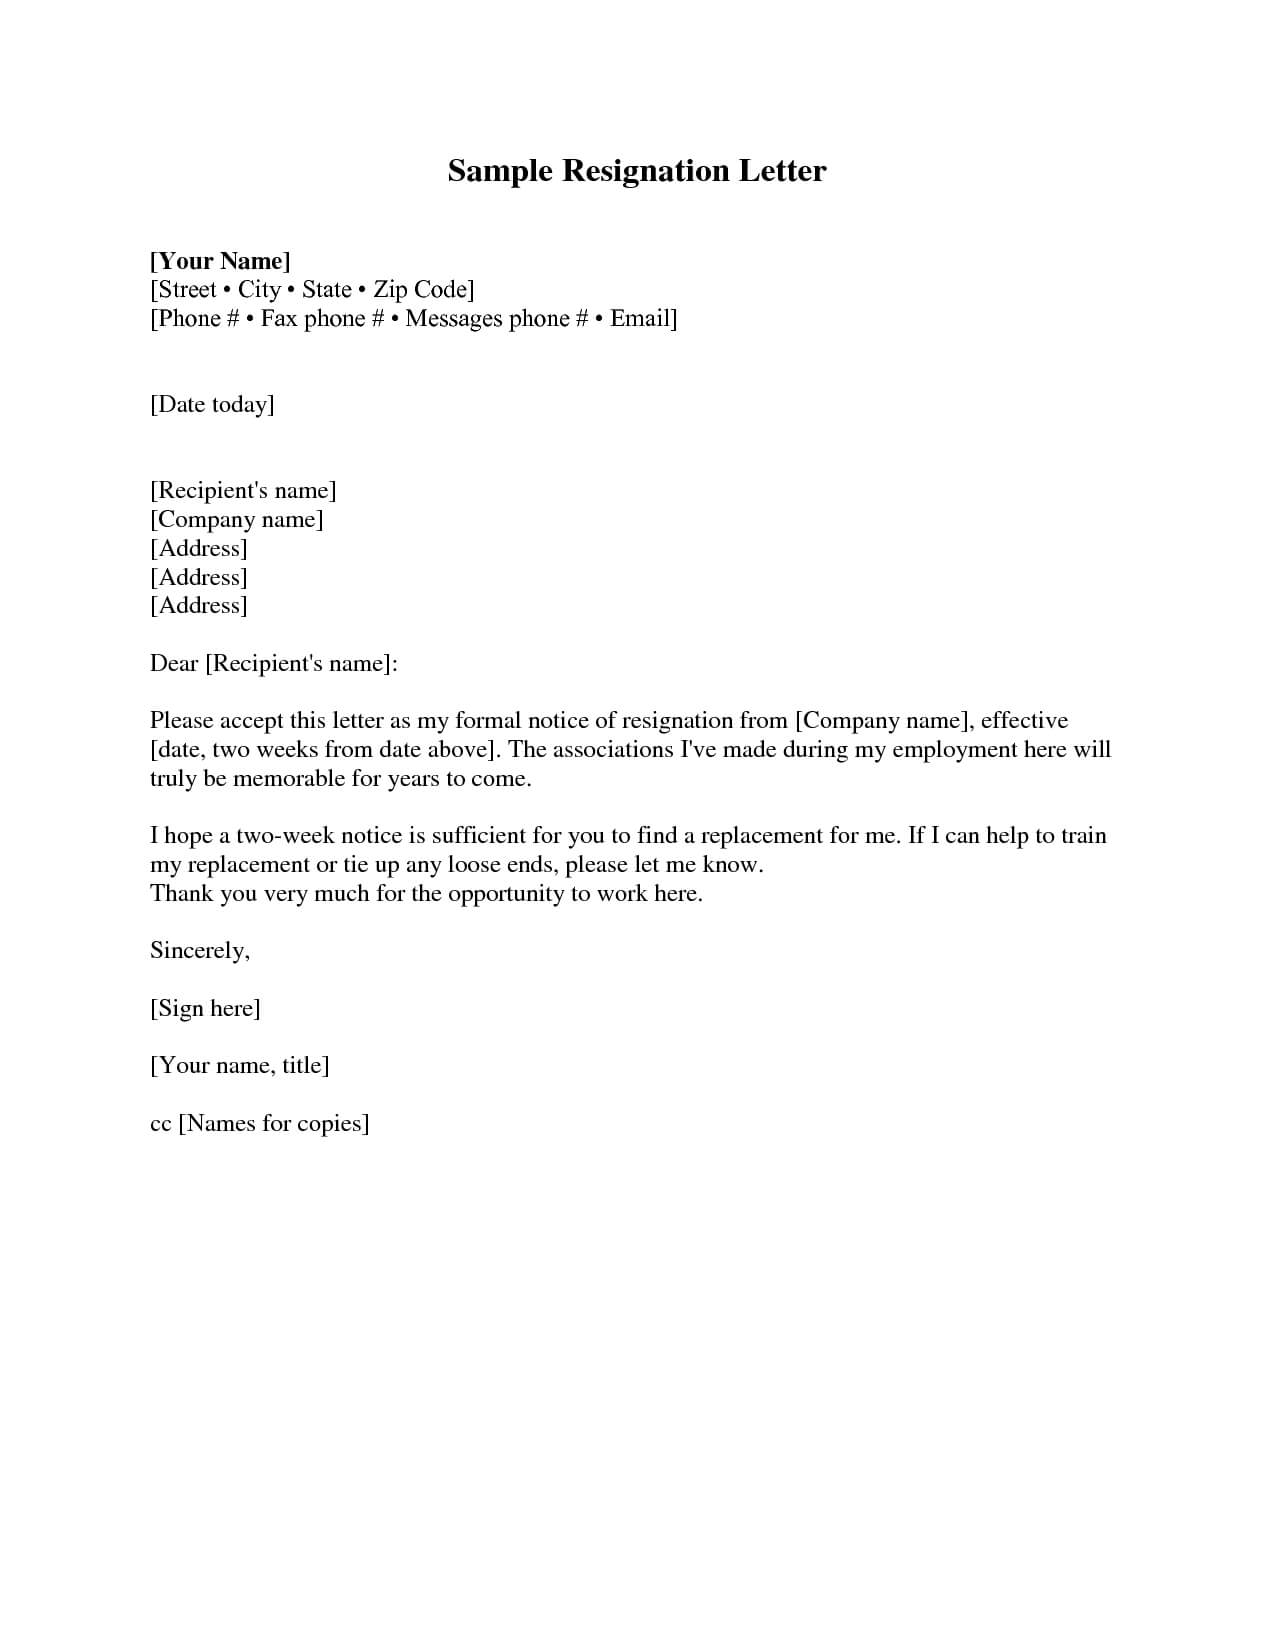 Resignation Letter 2 Weeks Notice Resignation Letter within 2 Weeks Notice Template Word